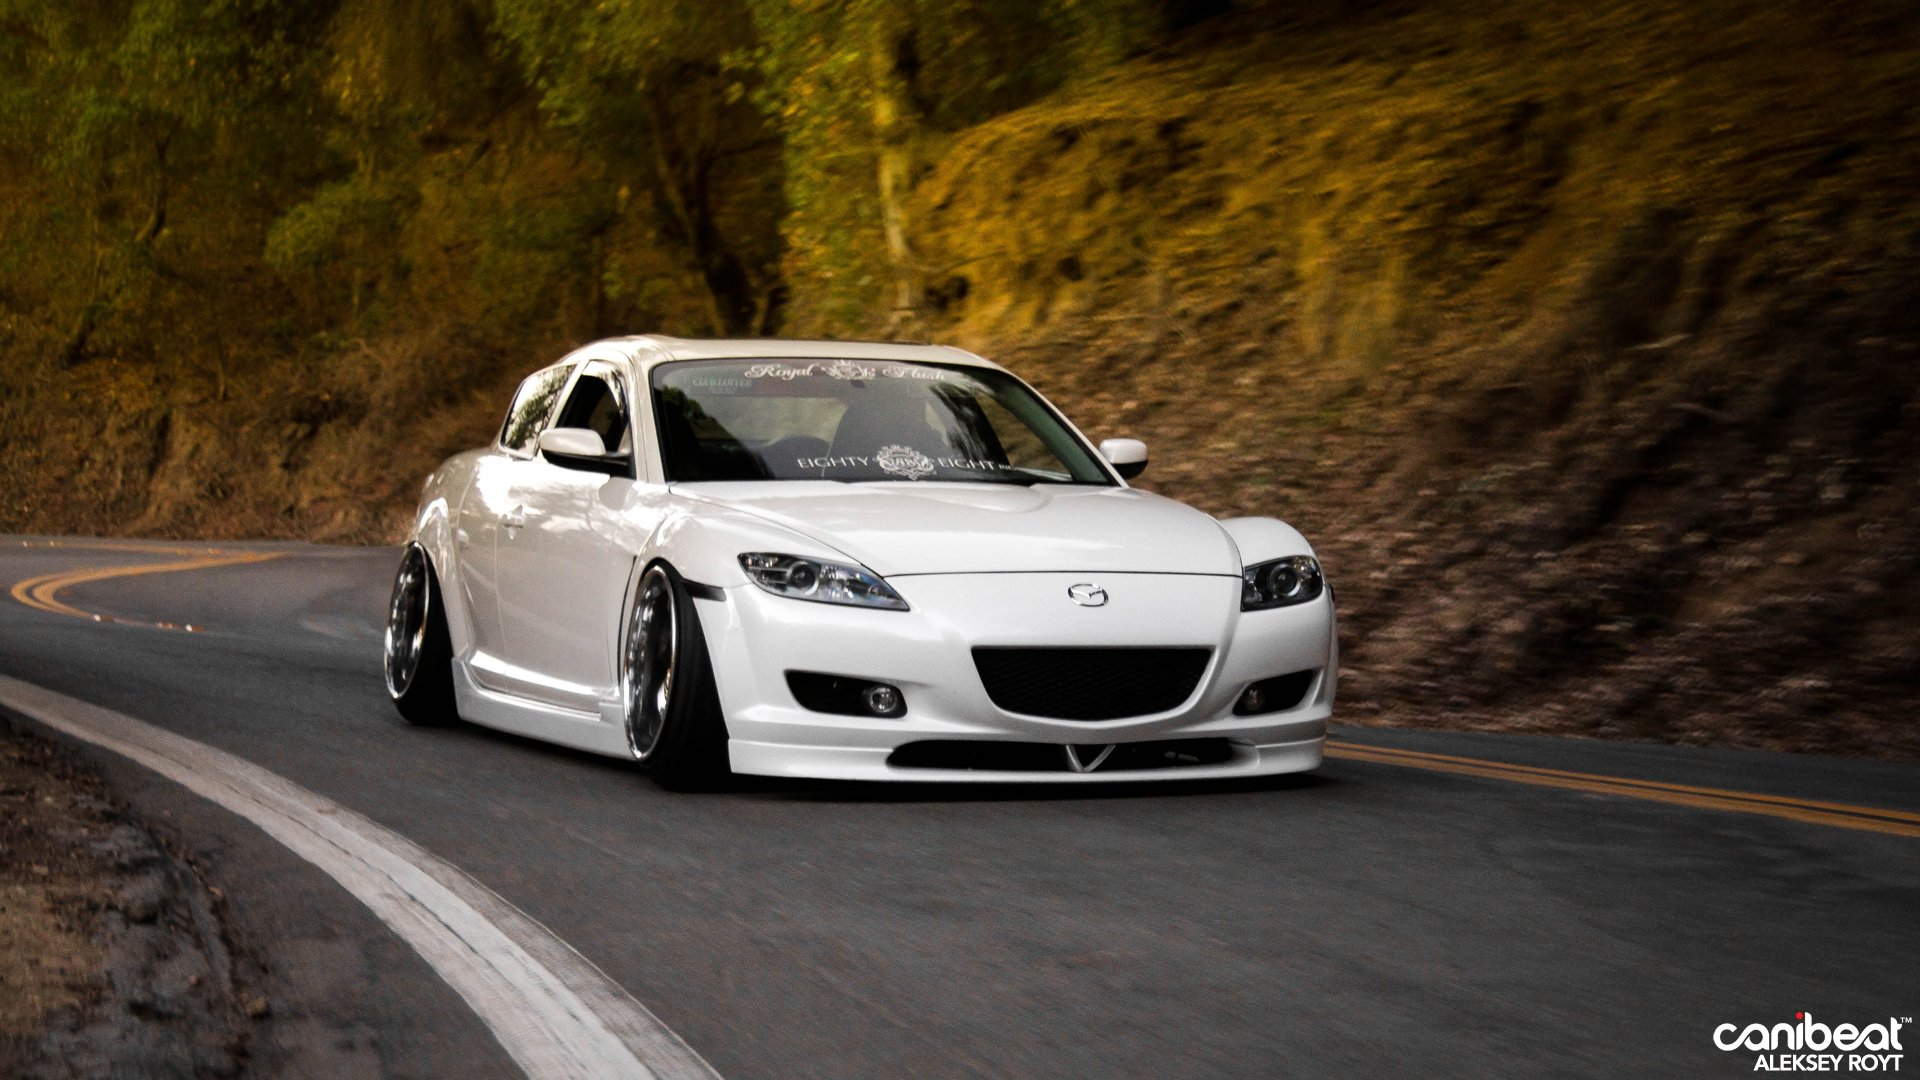 mazda rx8 tuning custom wallpaper 1920x1080 716404 wallpaperup. Black Bedroom Furniture Sets. Home Design Ideas